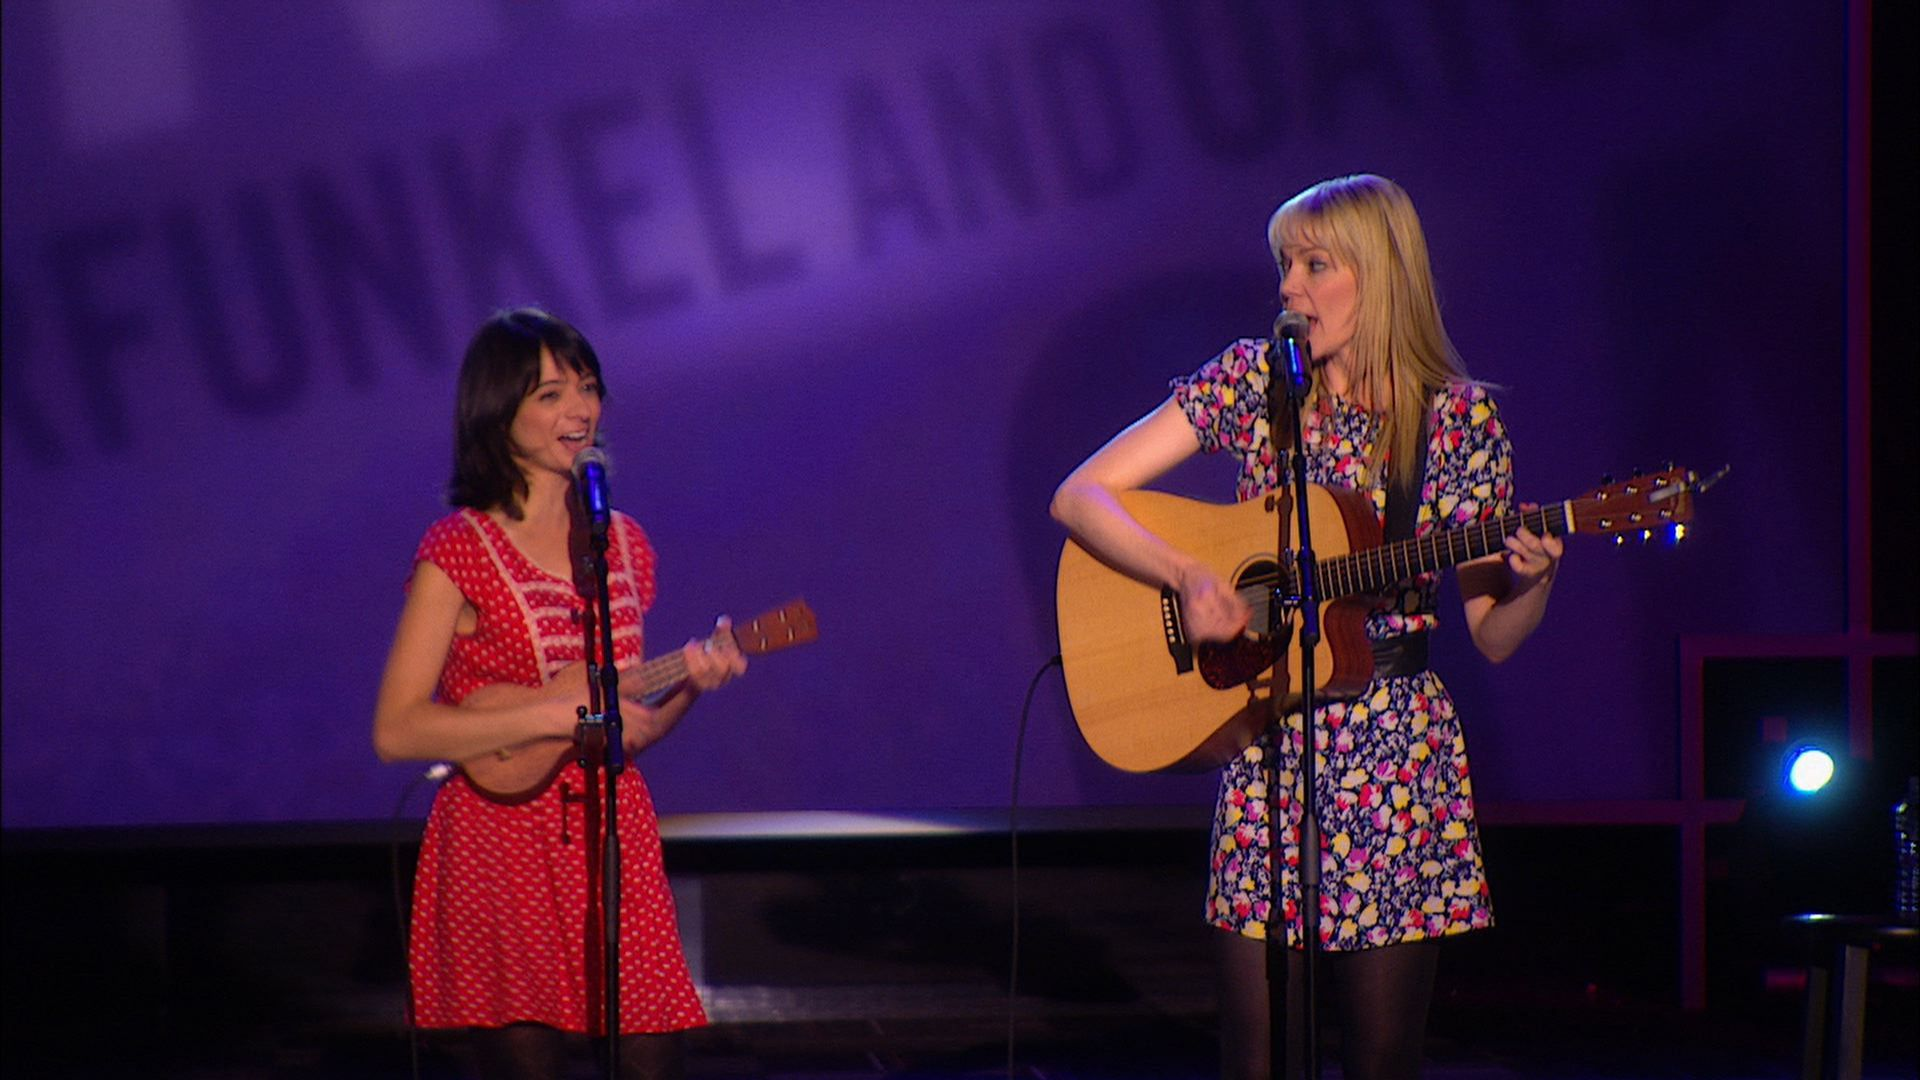 Garfunkel and Oates - Sex with Ducks - The Half Hour ...